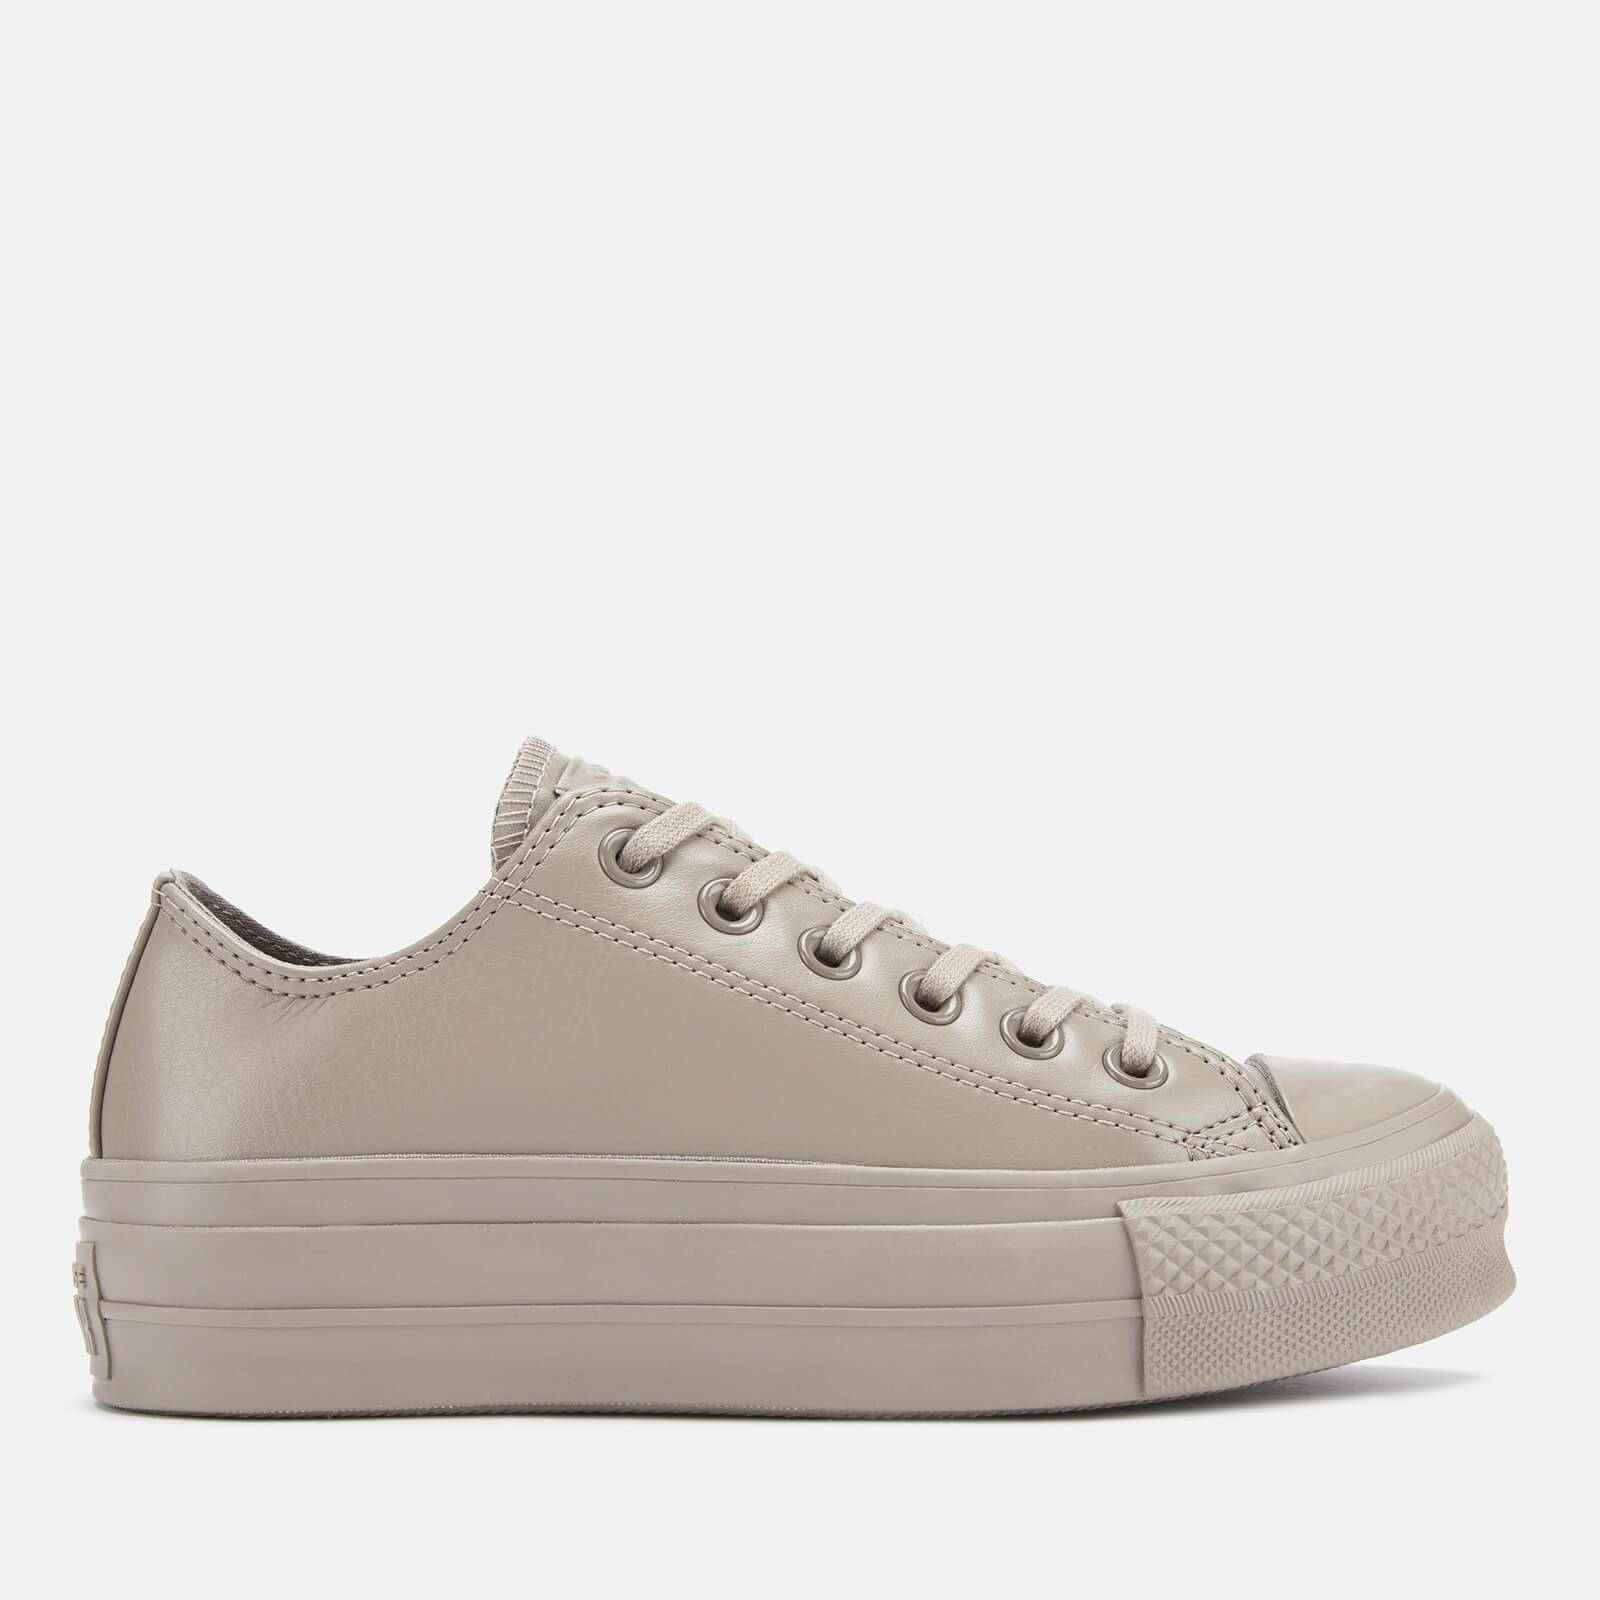 Converse Women's Chuck Taylor All Star Lift Ox Trainers - Sepia Stone/Sepia Stone - UK 4 - Brown